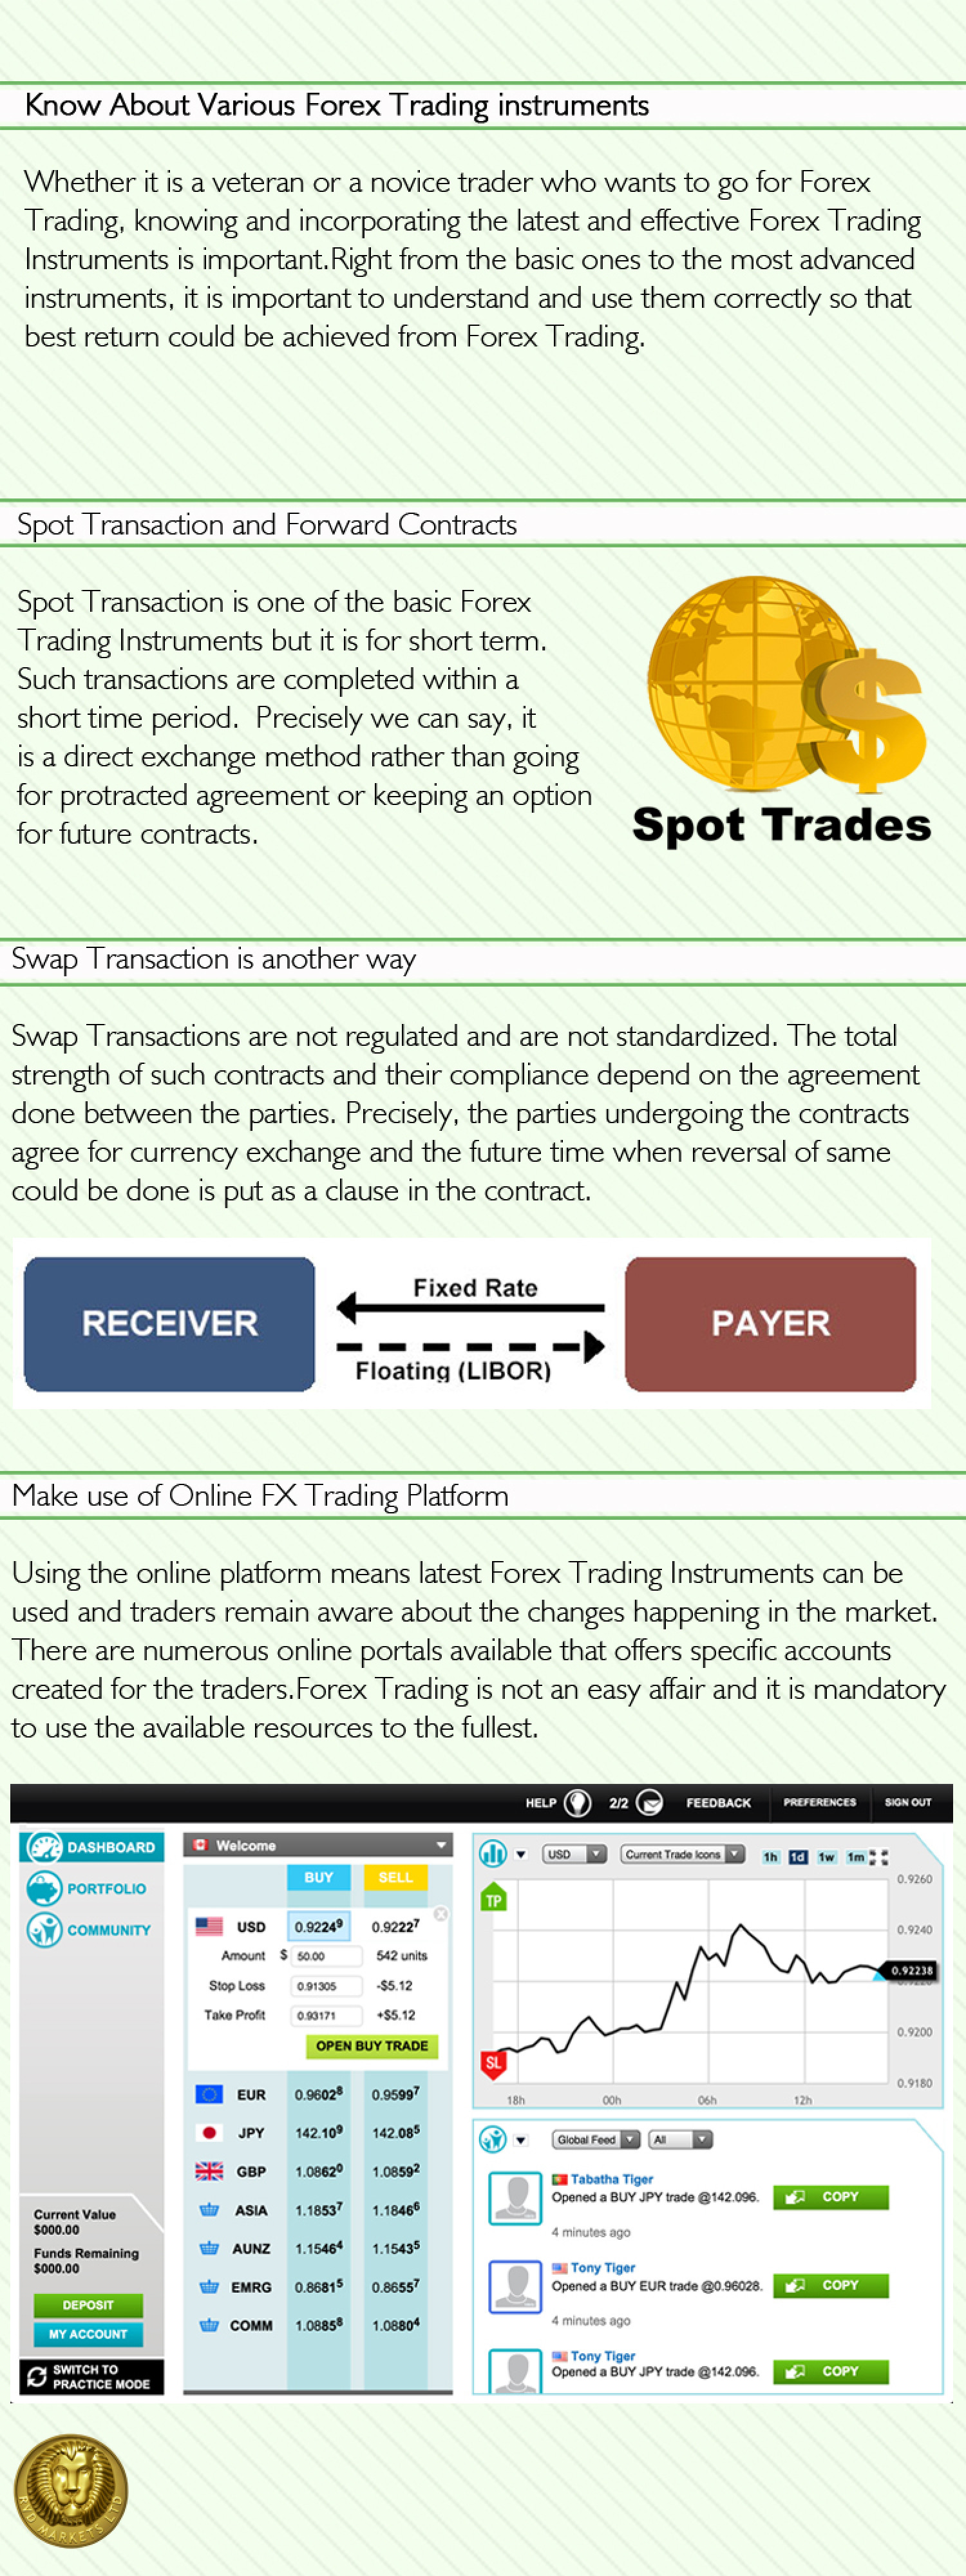 Trading options visually download